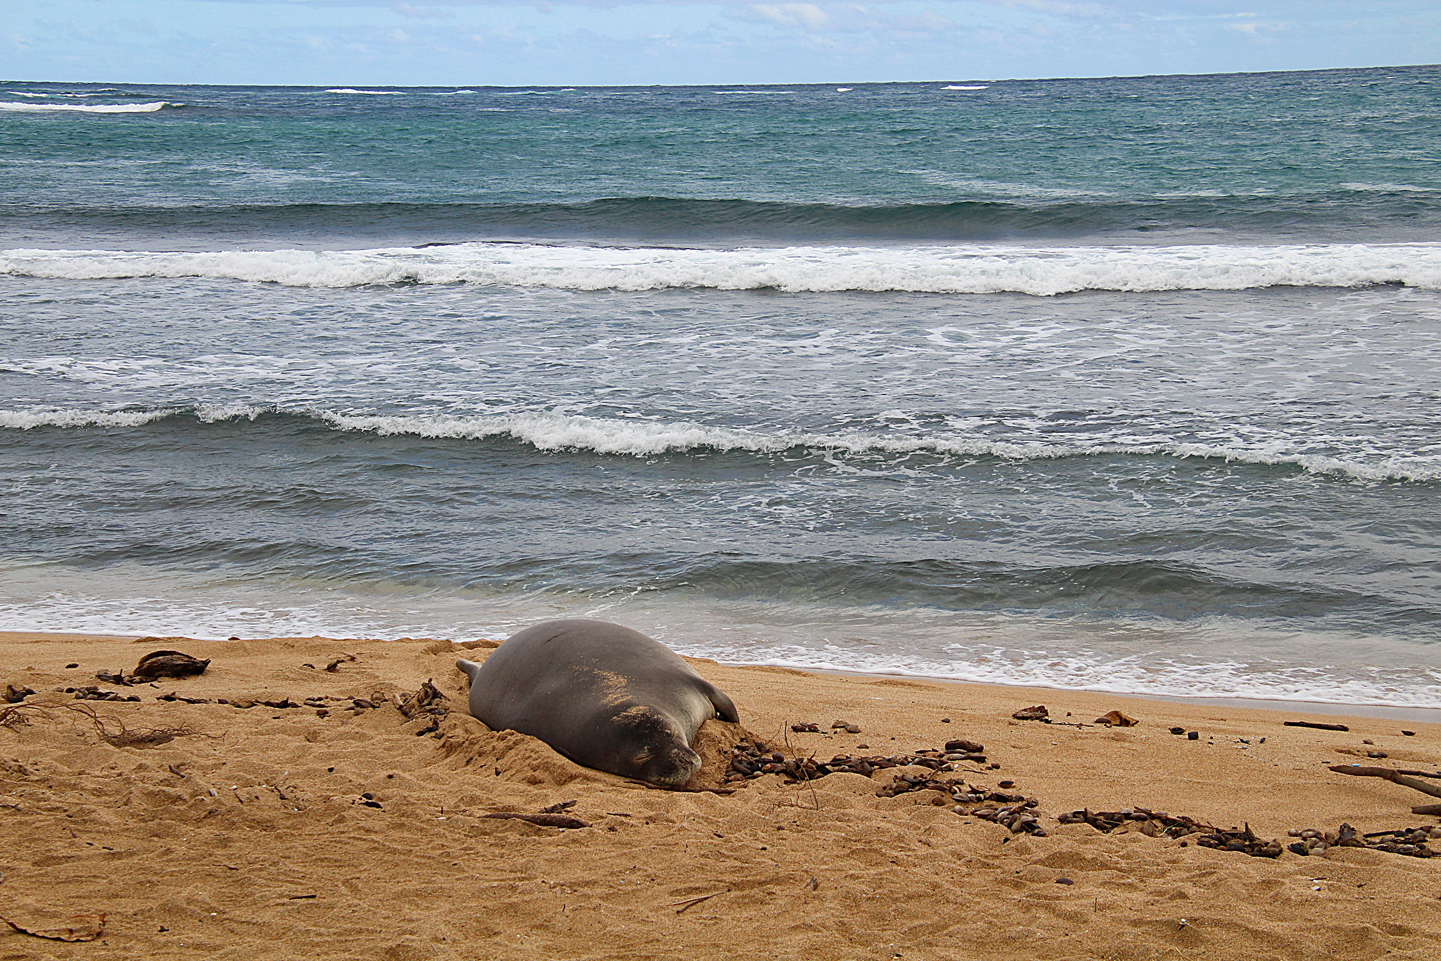 Hawaiian Monk Seal on the beach in Hau'ula.